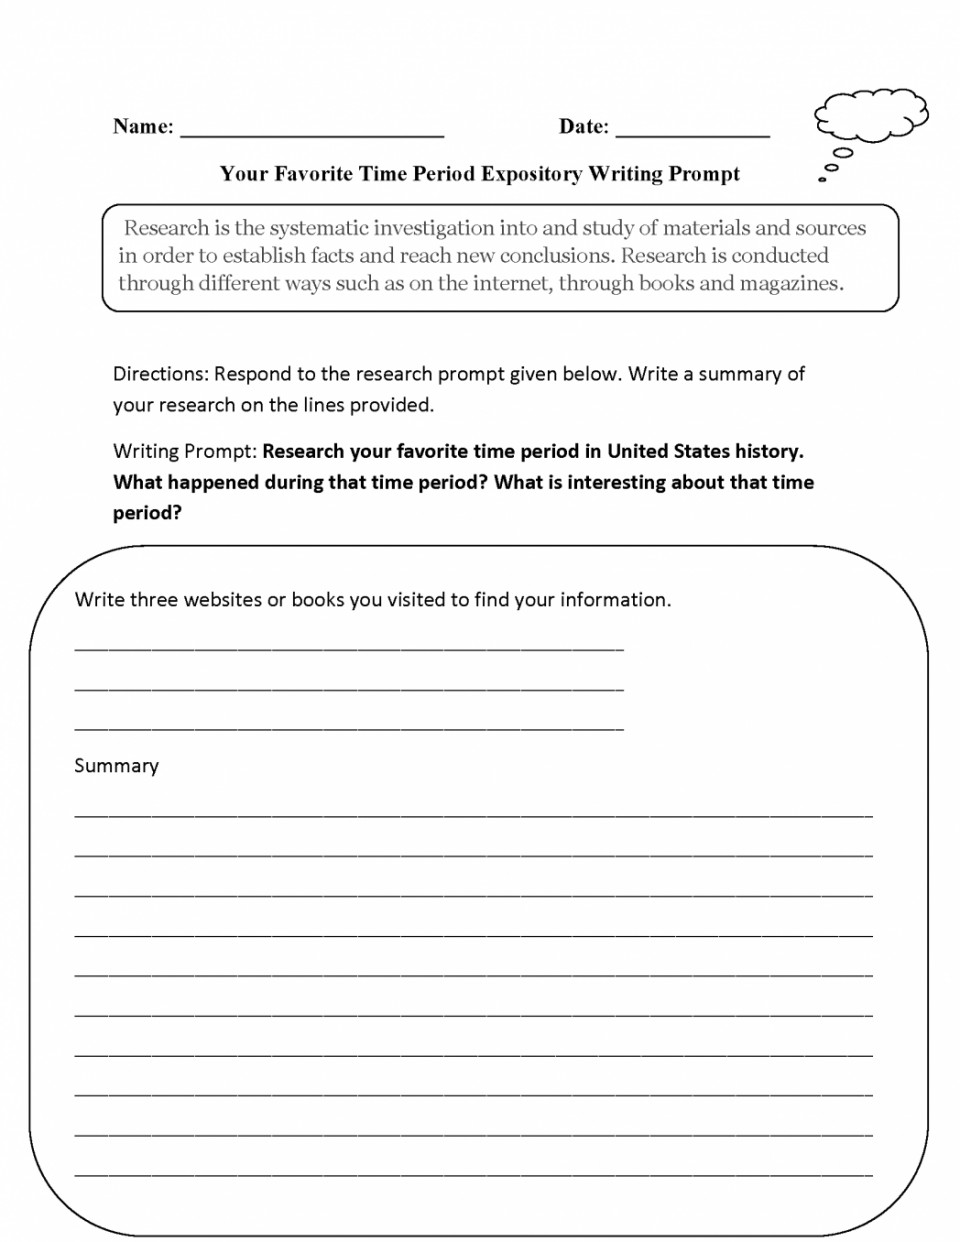 018 Essay Example Good Informative Topics Prompts Favorite Time Period Expository Writing P To Write An On The Topic Of Immigration Remarkable For 5th Grade Paper College Middle School 960